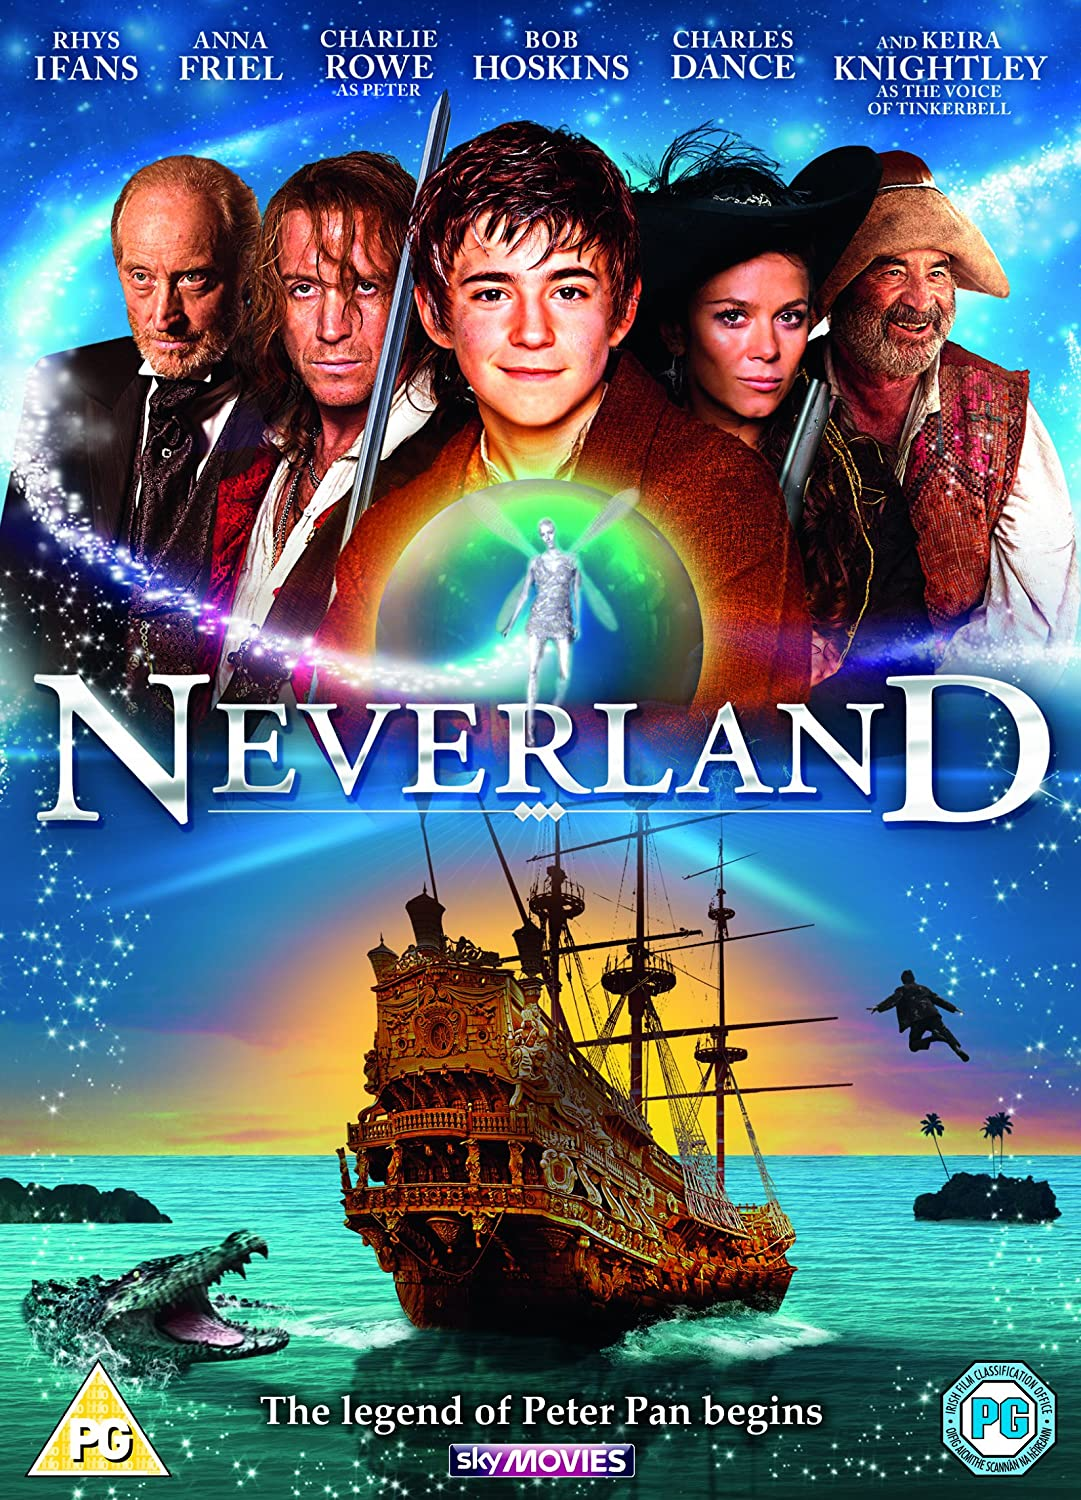 Neverland (2003/I) Movie